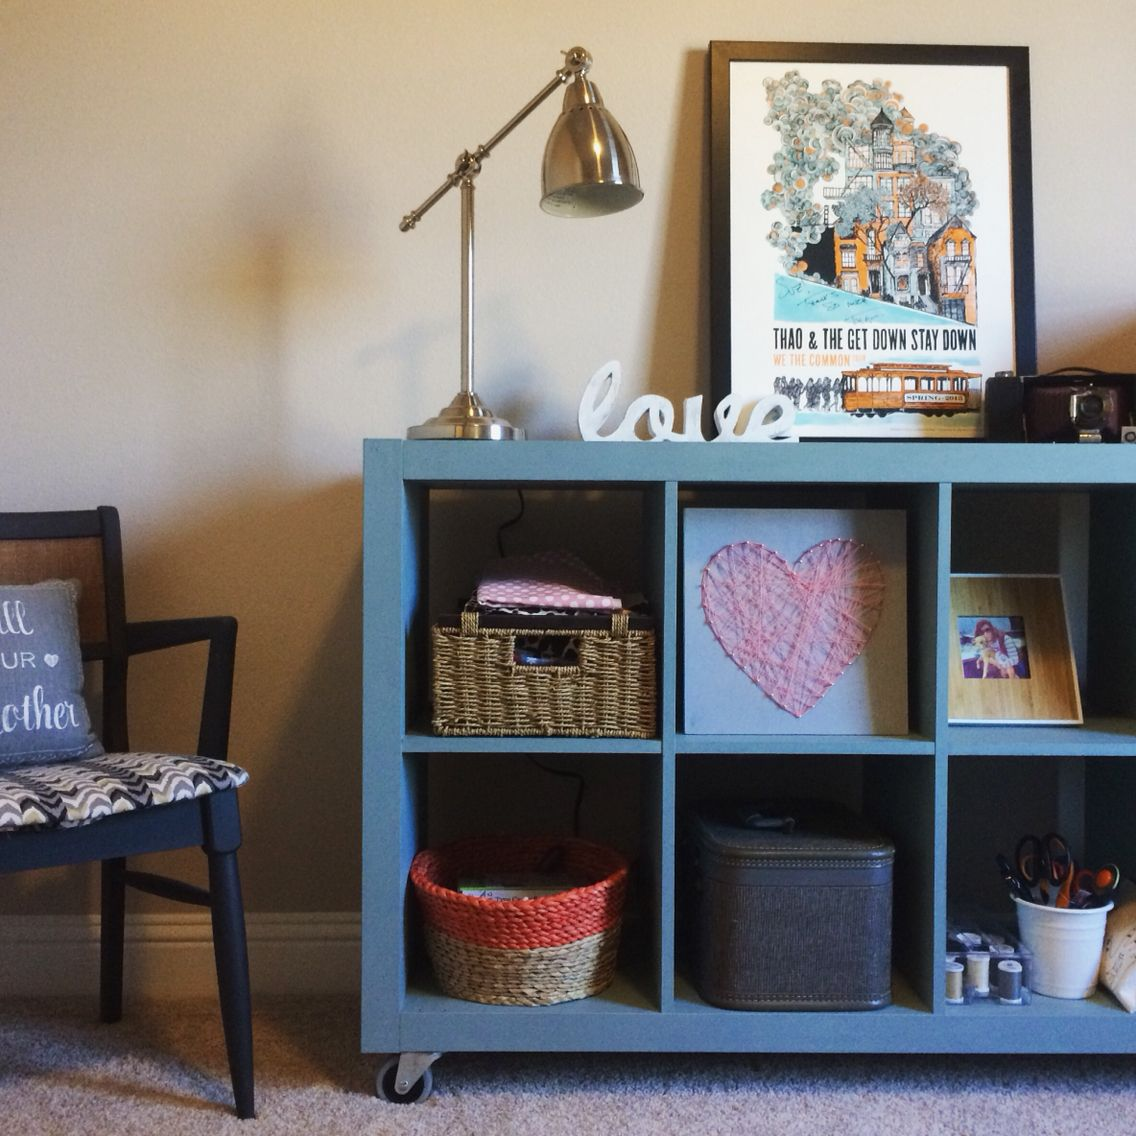 Ikea Expedit Chalk Paint Expedit Ikea Bookshelf Painted Duck Egg Blue With Annie Sloan